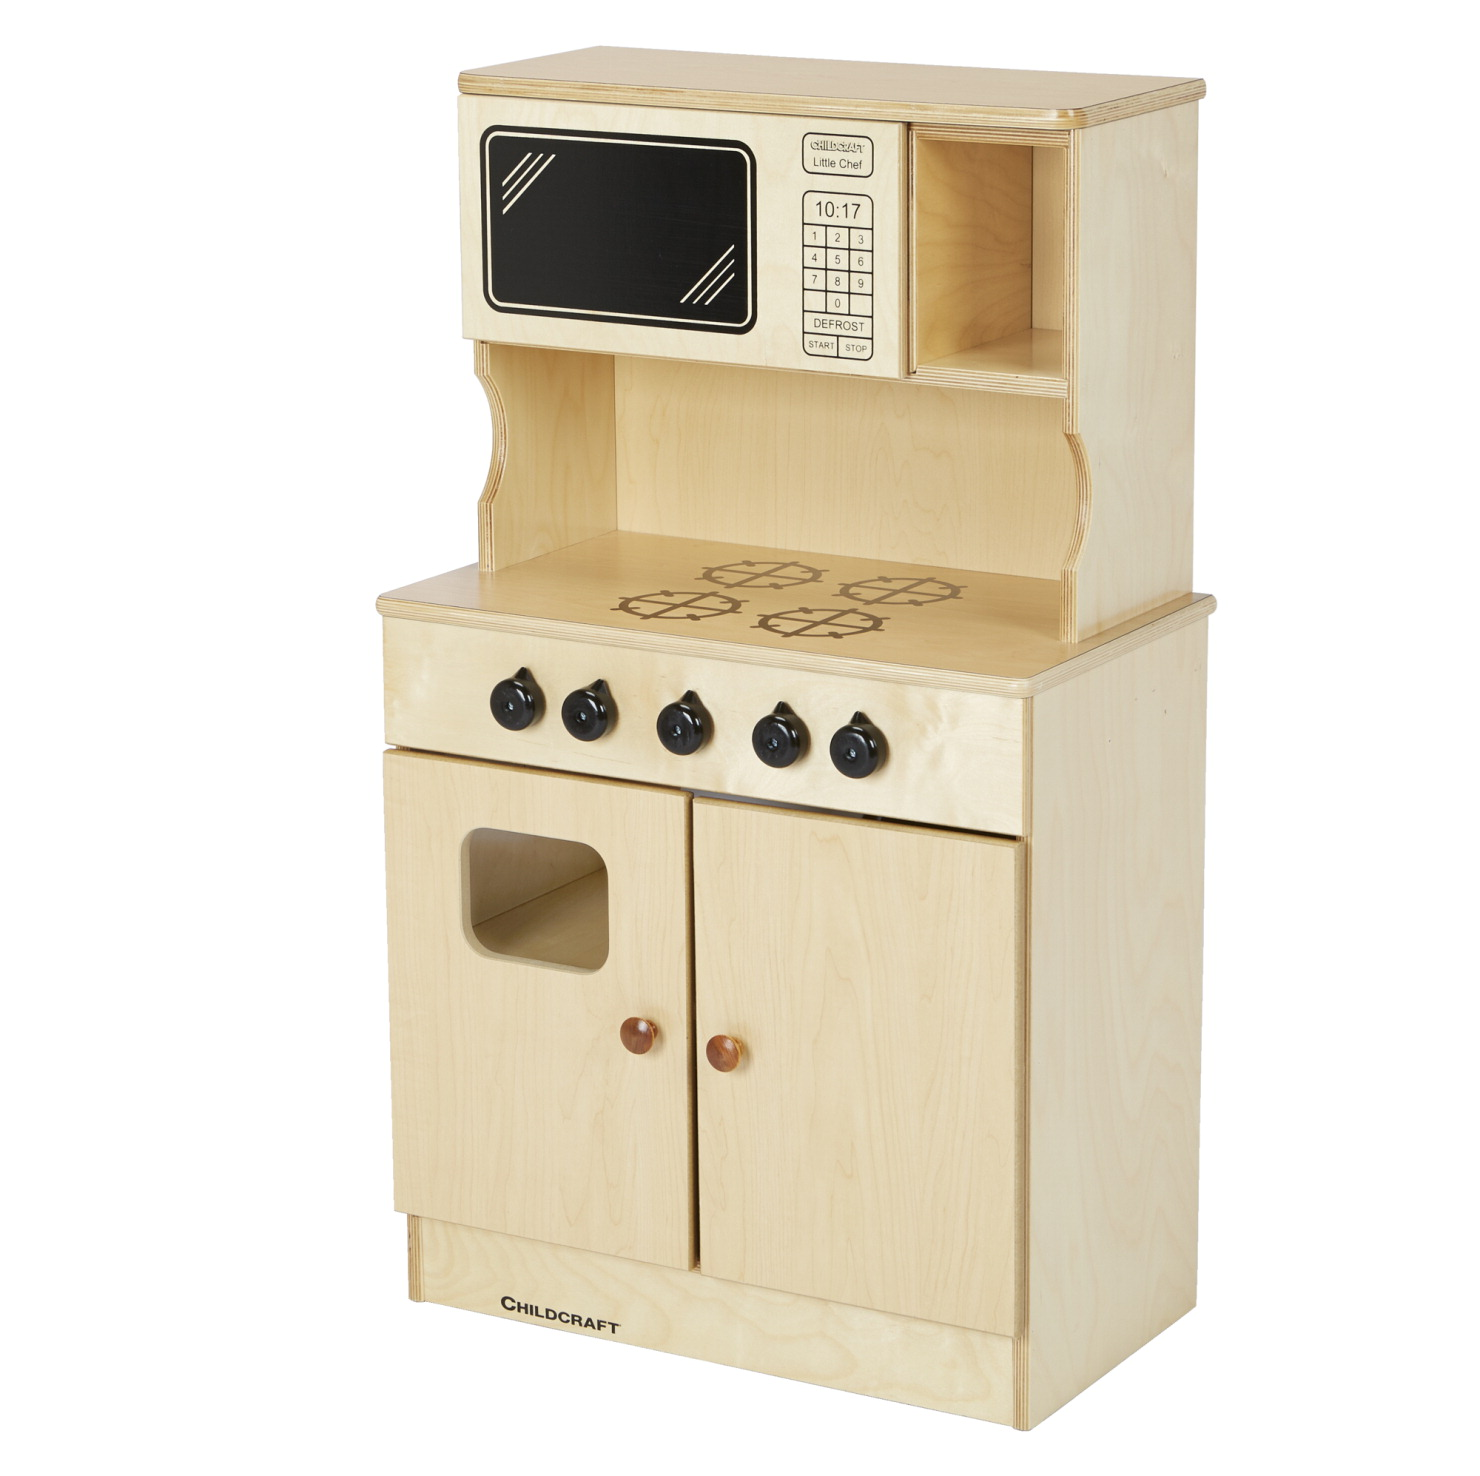 Stove and microwave school specialty marketplace for Child craft play kitchen